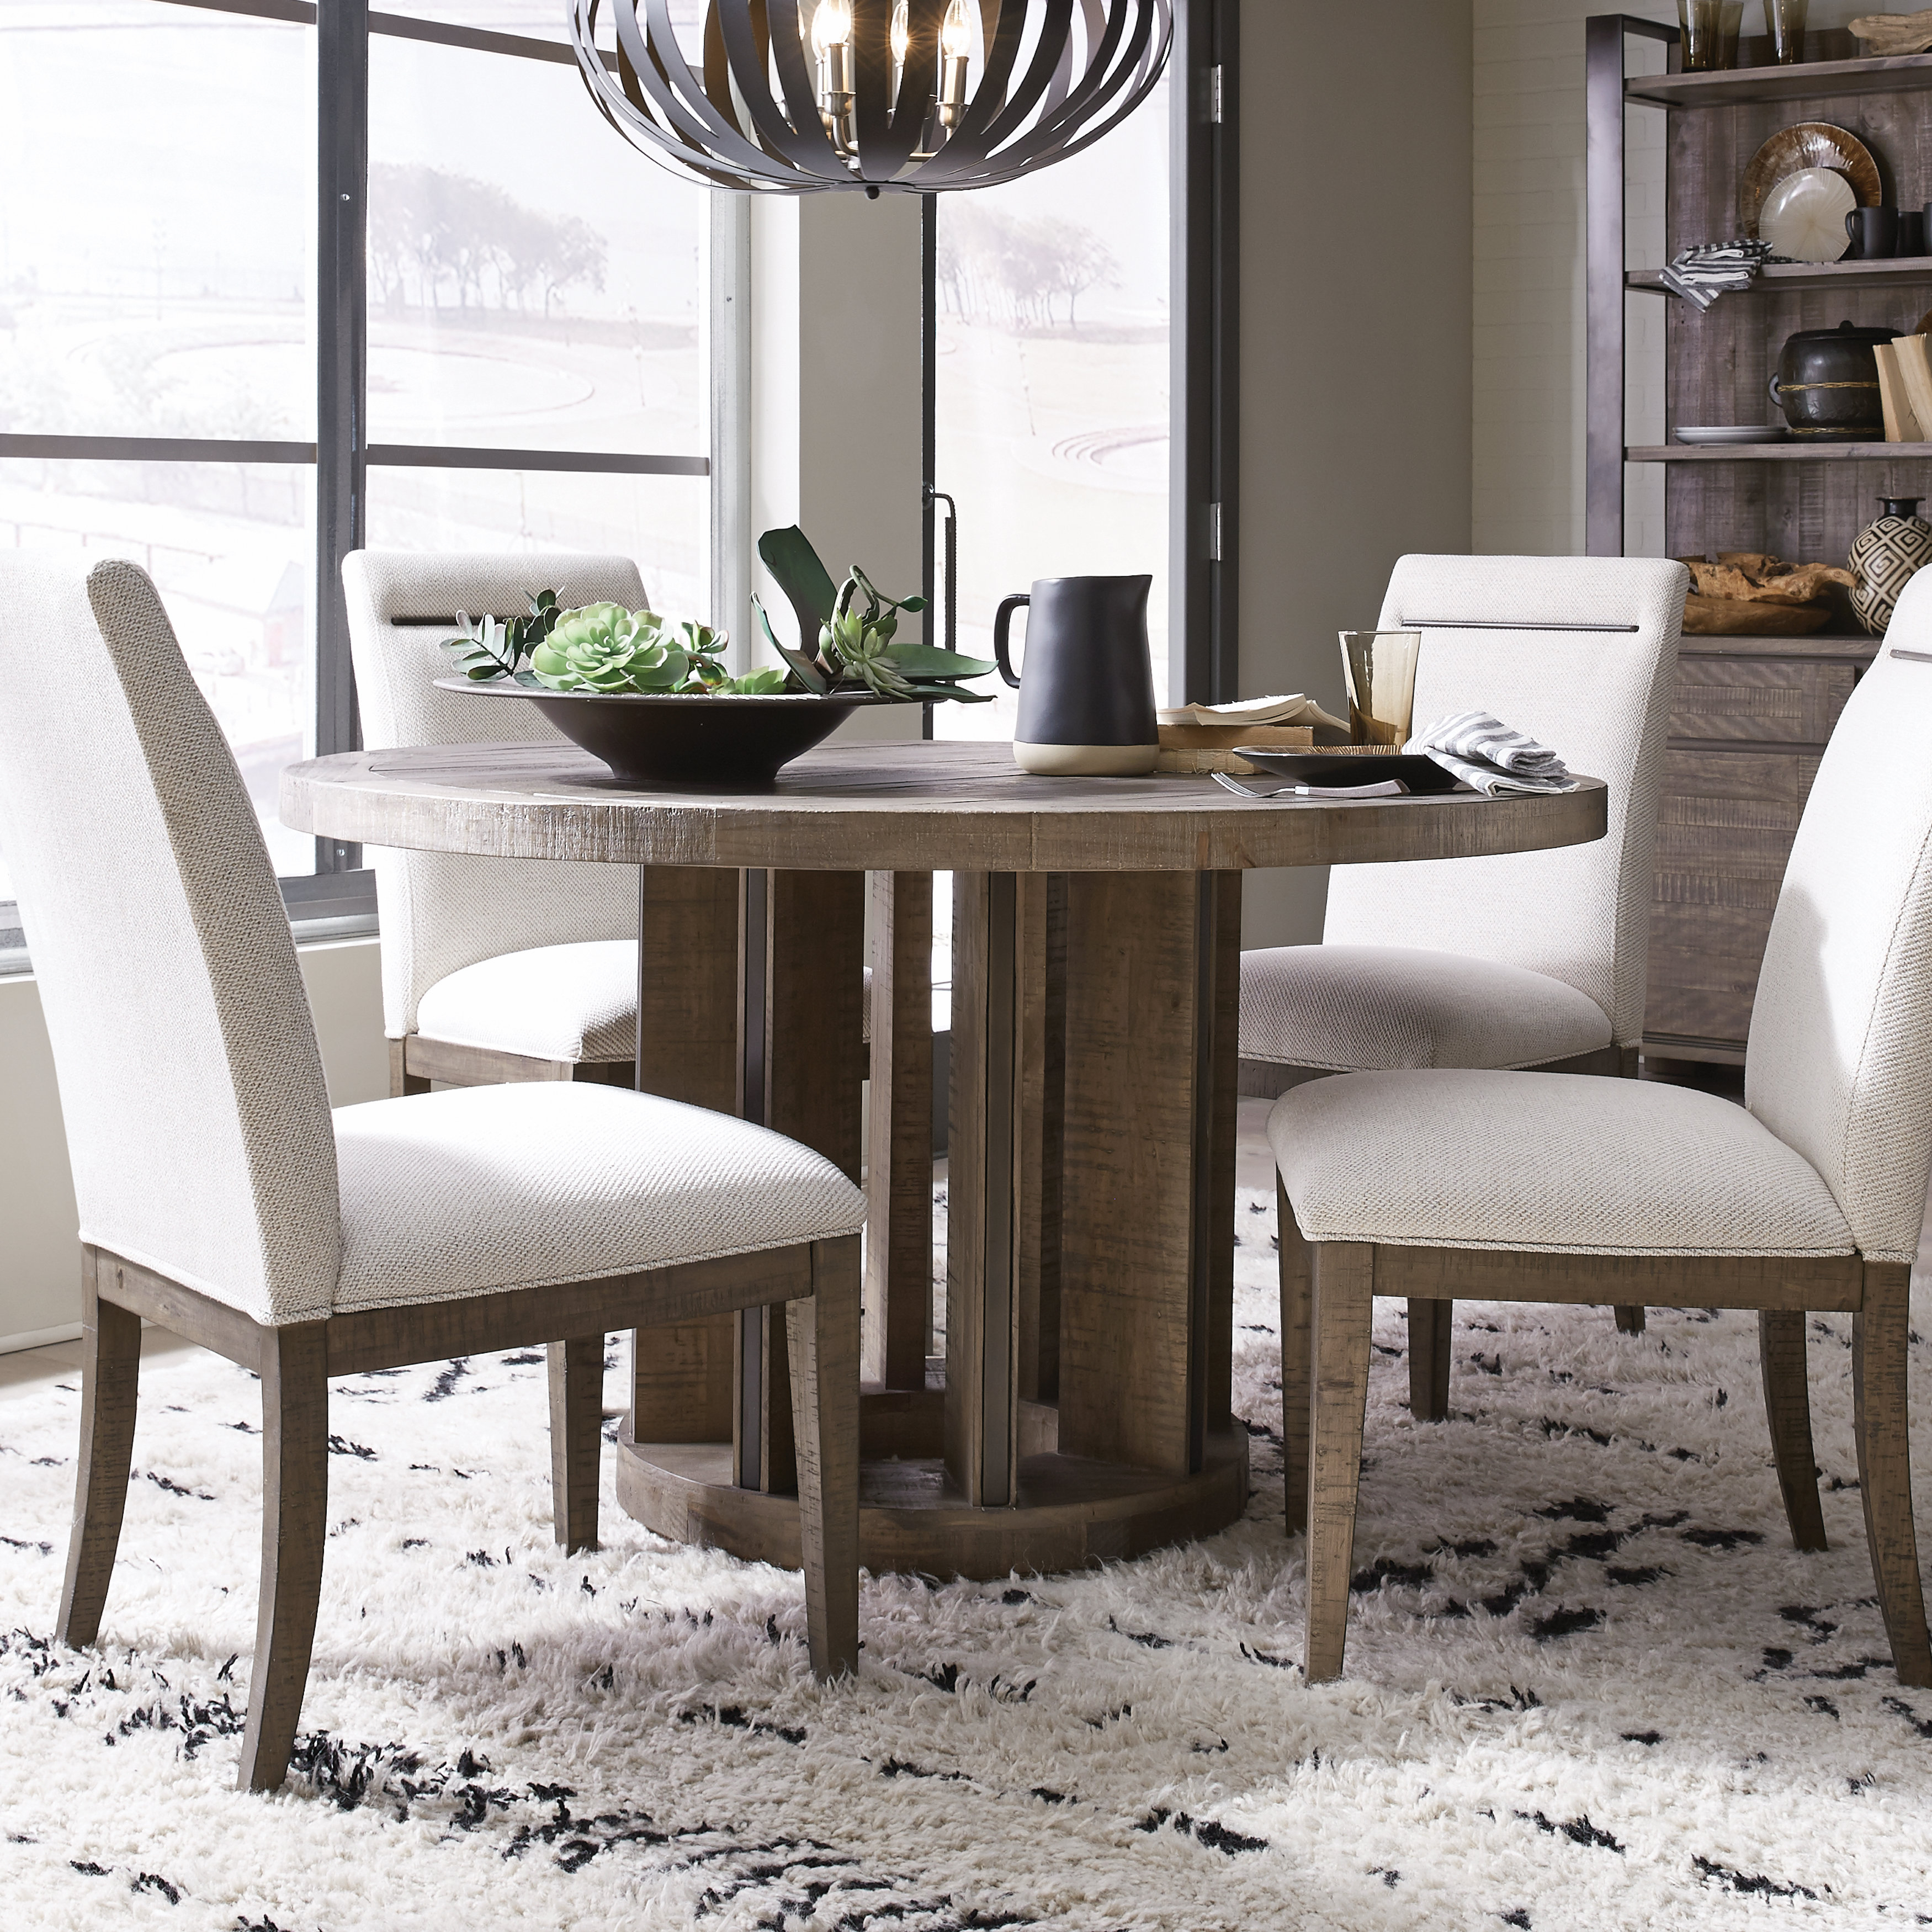 Norah 5 Piece Solid Wood Dining Set Pertaining To Most Current Sundberg 5 Piece Solid Wood Dining Sets (Image 8 of 20)